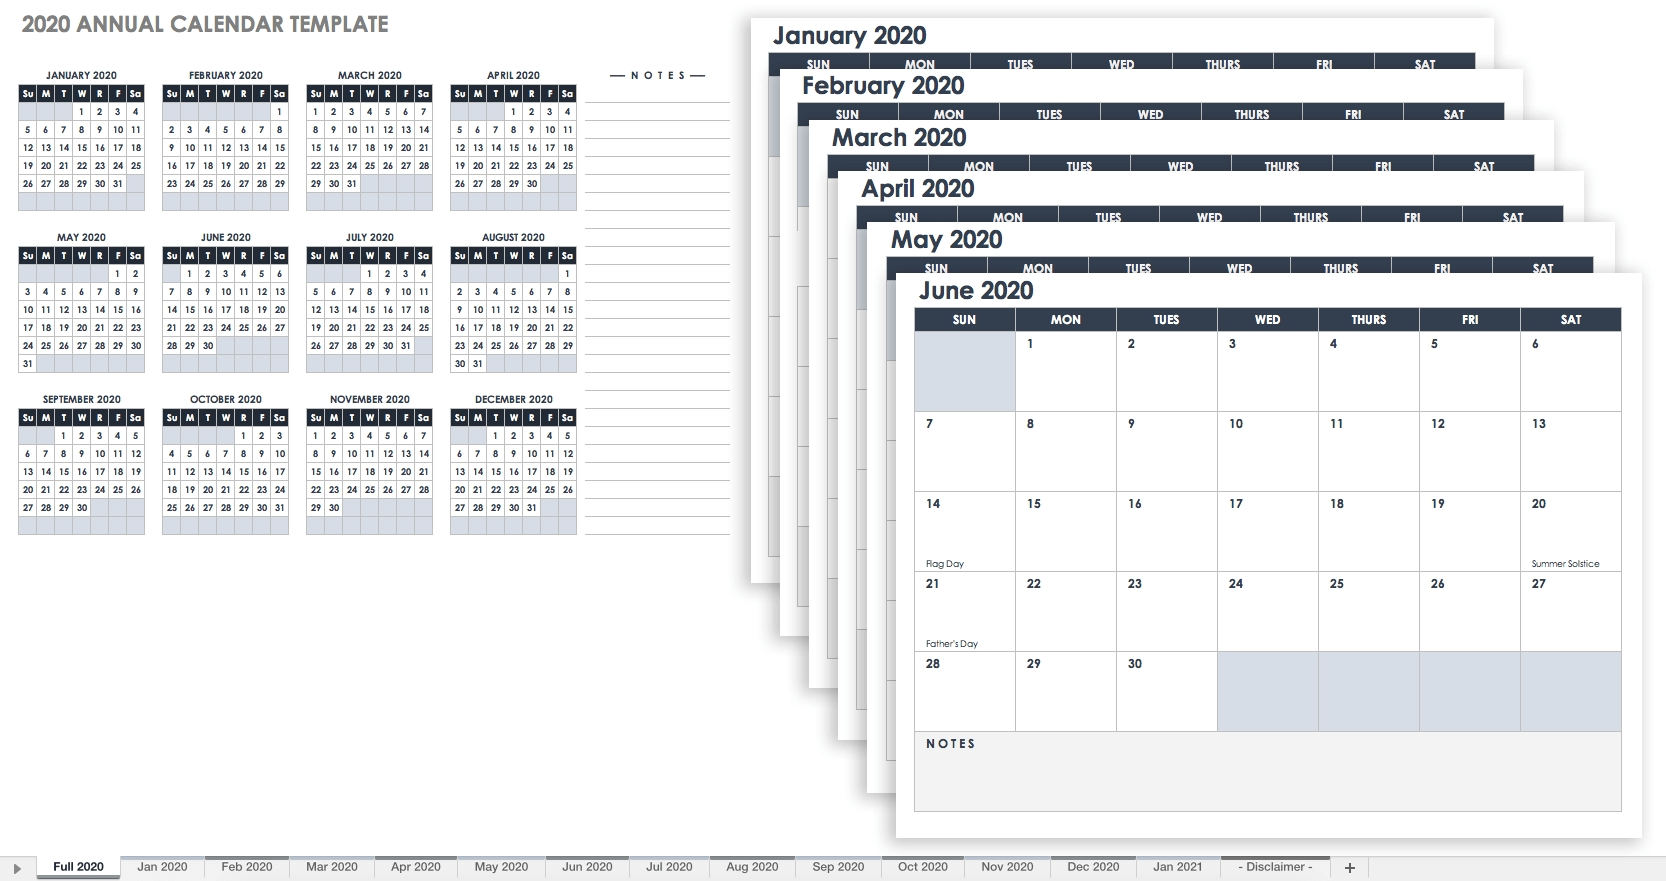 Free, Printable Excel Calendar Templates For 2019 & On | Smartsheet throughout Example Table For 1 Month 1 Week Event Process